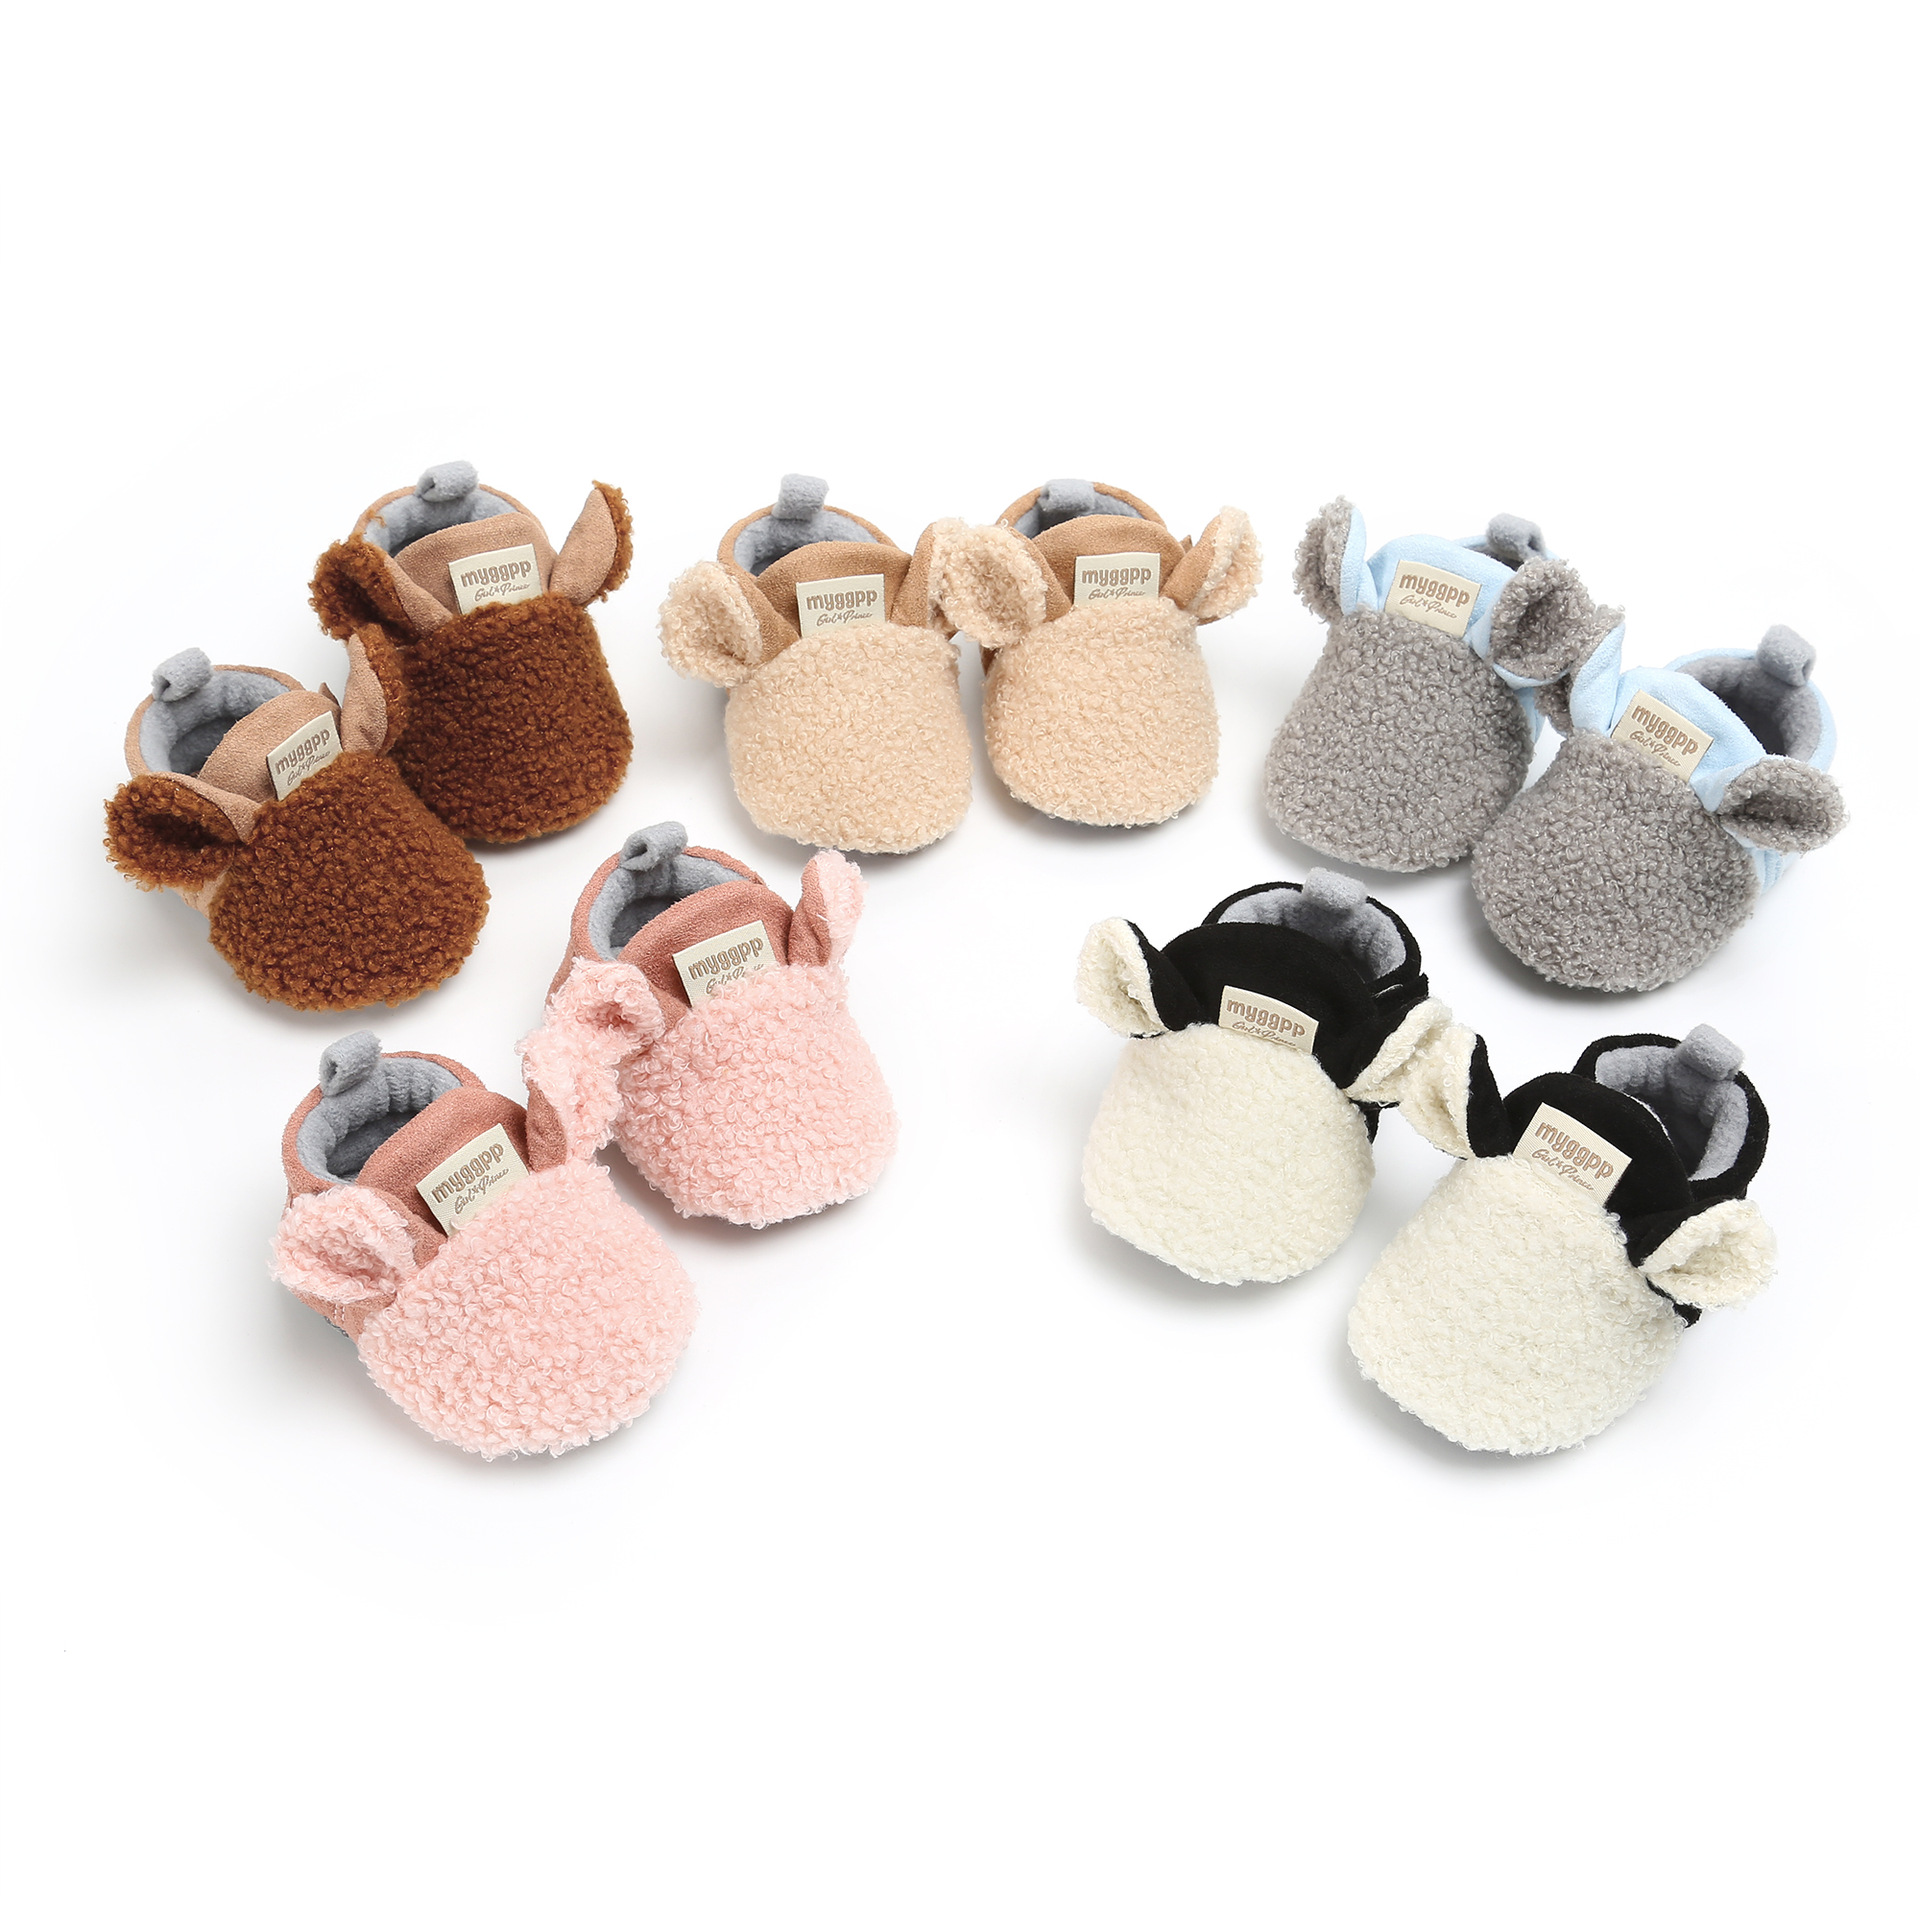 2019Winter Cotton Newborn Baby Boy Girl First Walkers Shoes Soft Sole Non-slip Footwear Cute Animal Shape Bebe Baby Shoes.CX85C